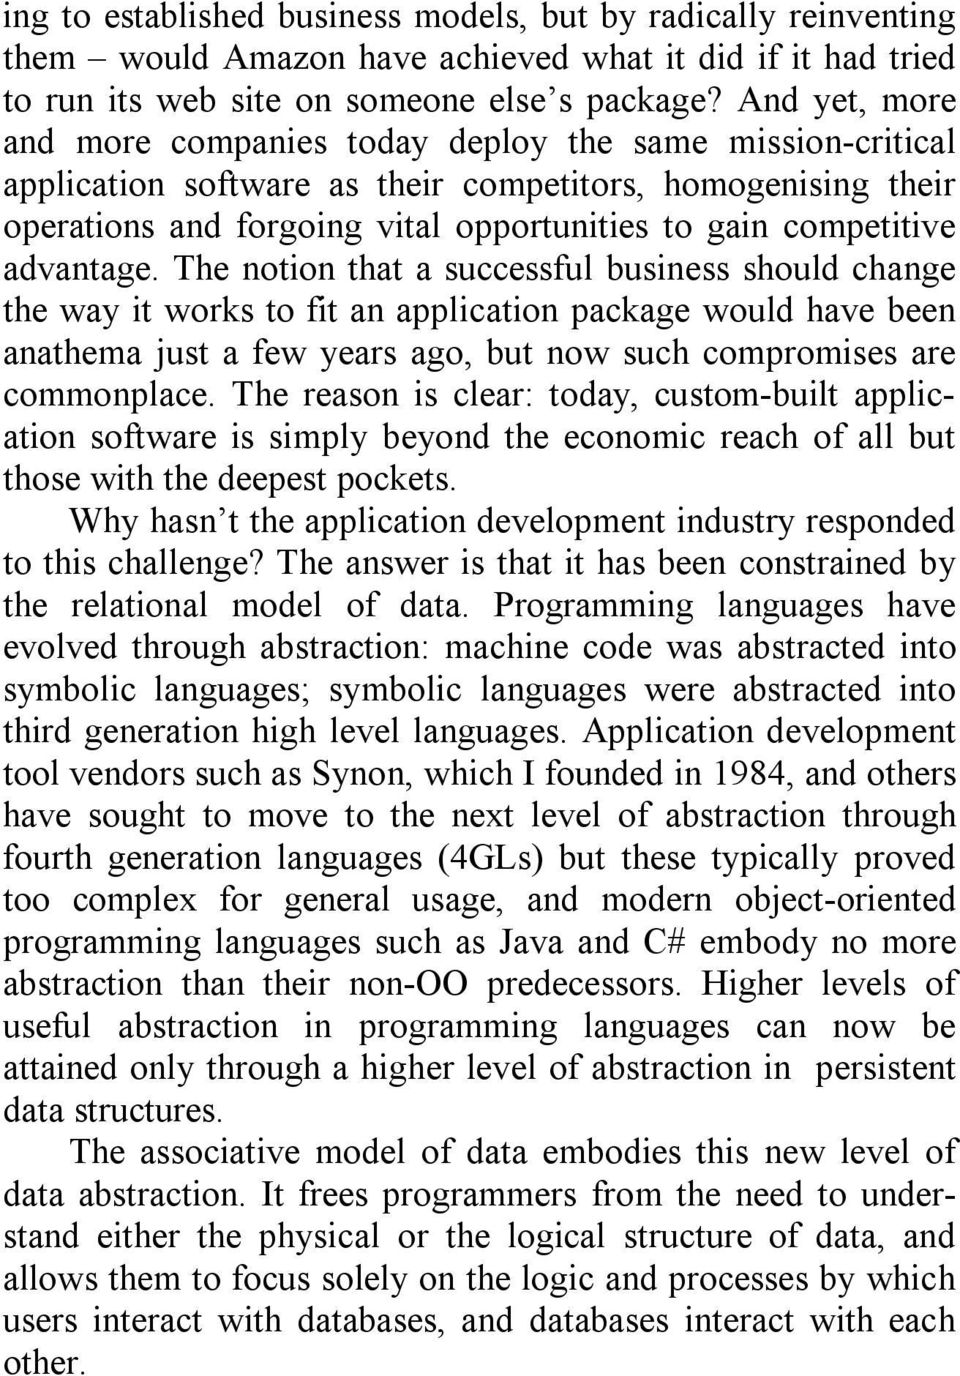 advantage. The notion that a successful business should change the way it works to fit an application package would have been anathema just a few years ago, but now such compromises are commonplace.